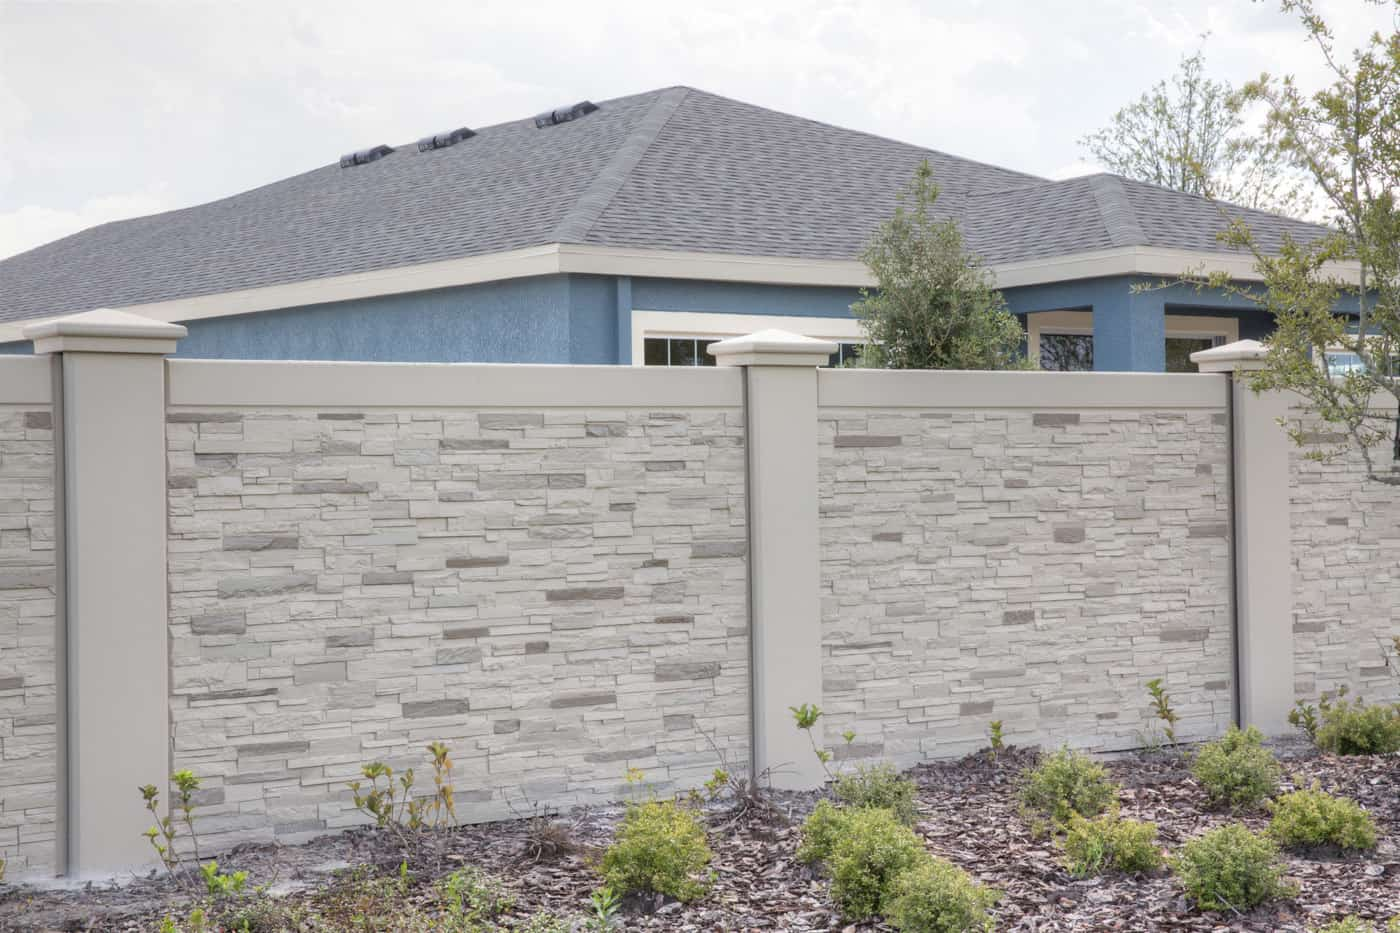 precast stone fence in front of blue house